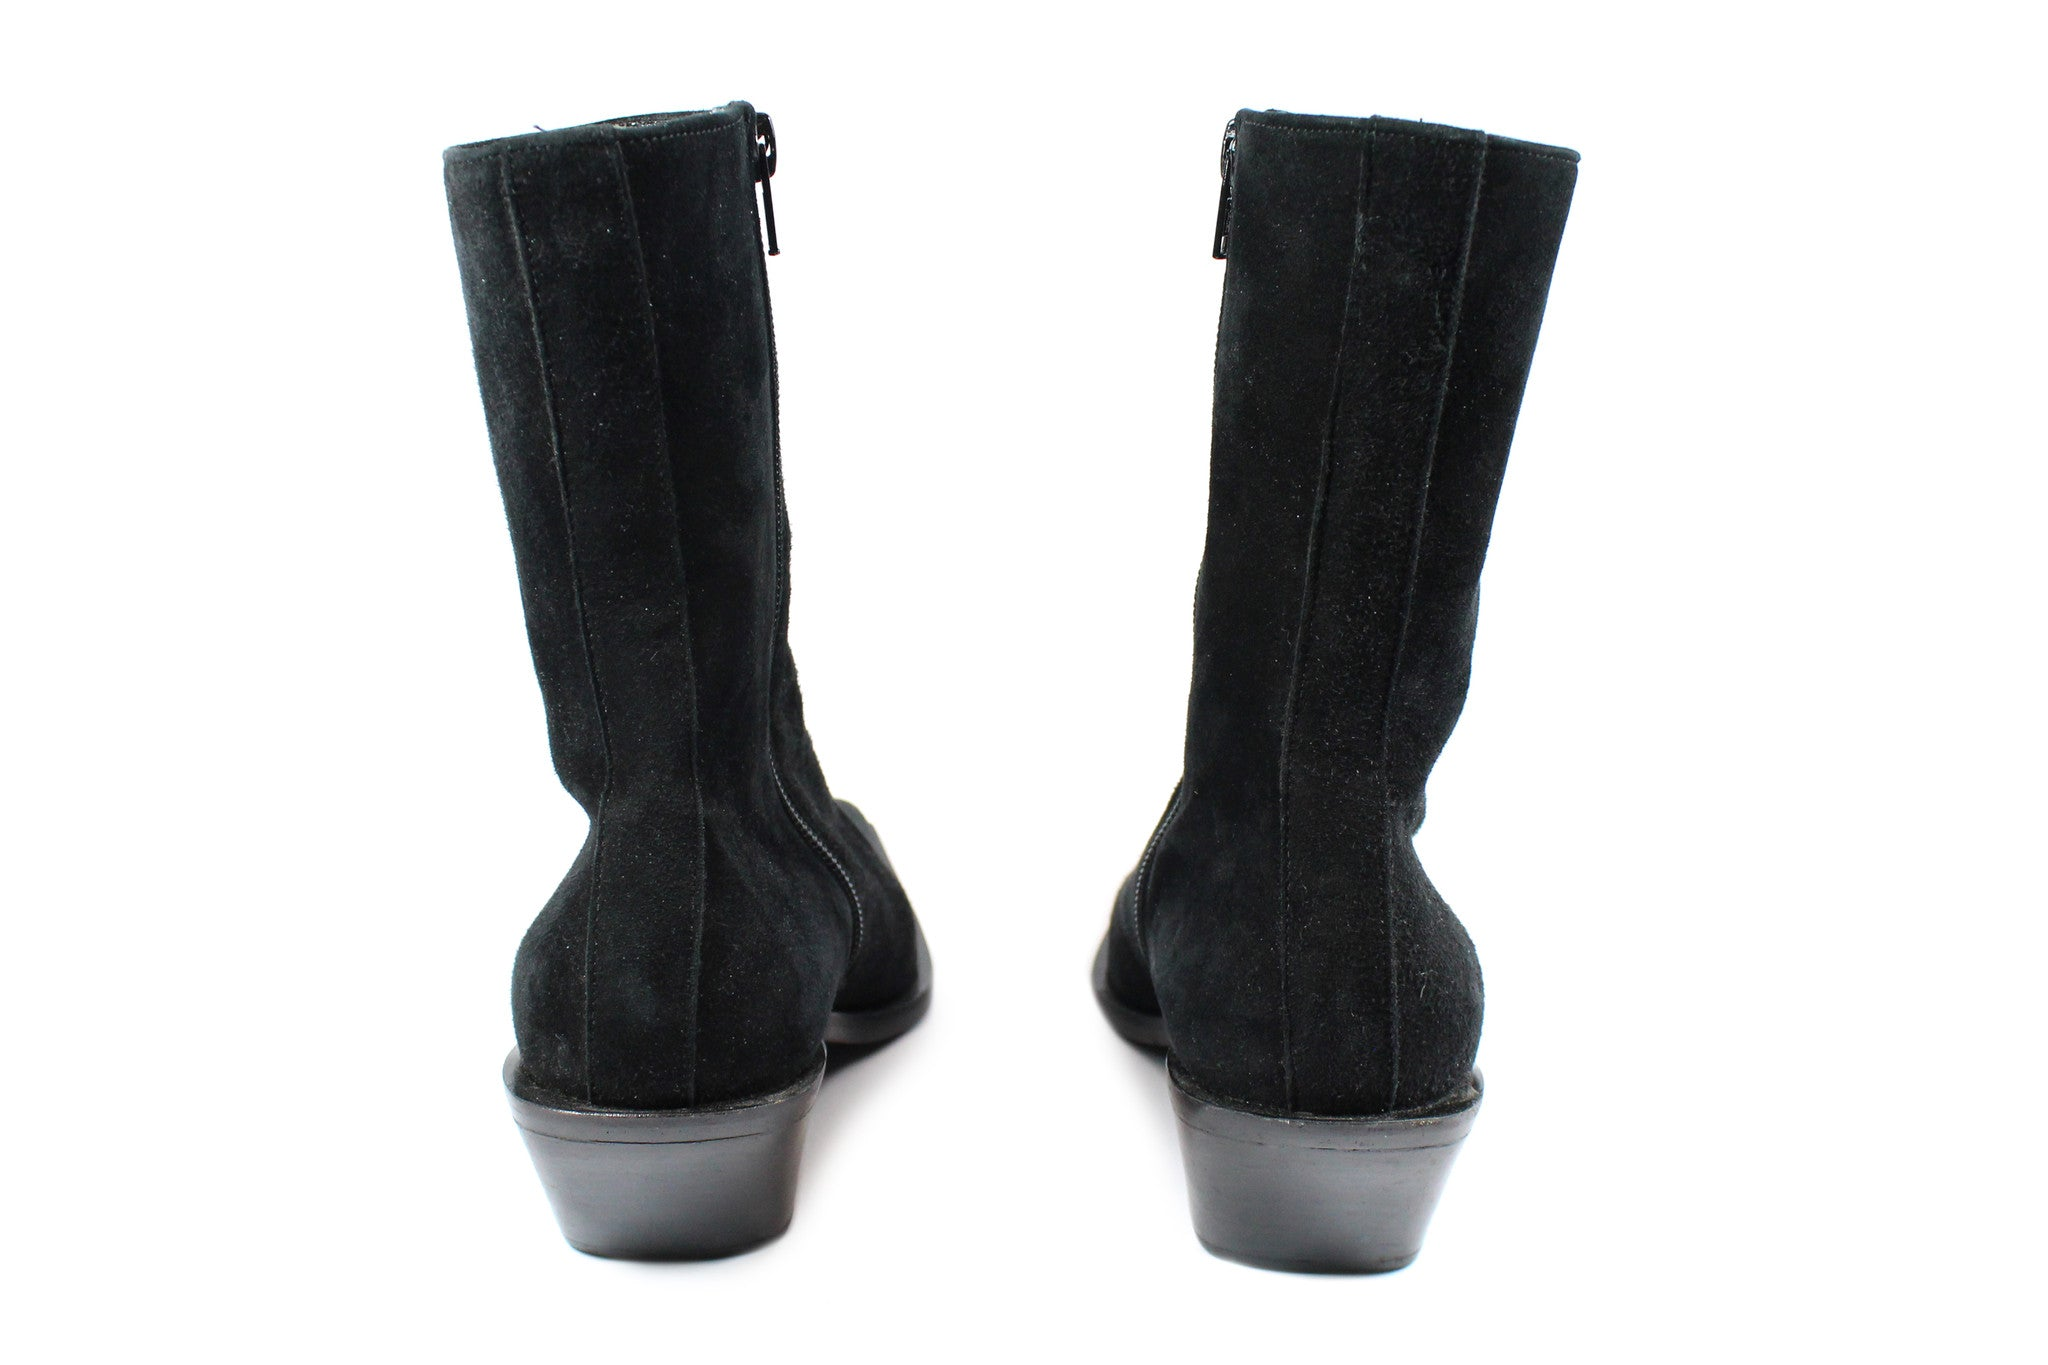 'SOLD' Ann Demeulemeester Suede Ankle Boots w Slanted Heel (Size 37) - Encore Consignment - 4